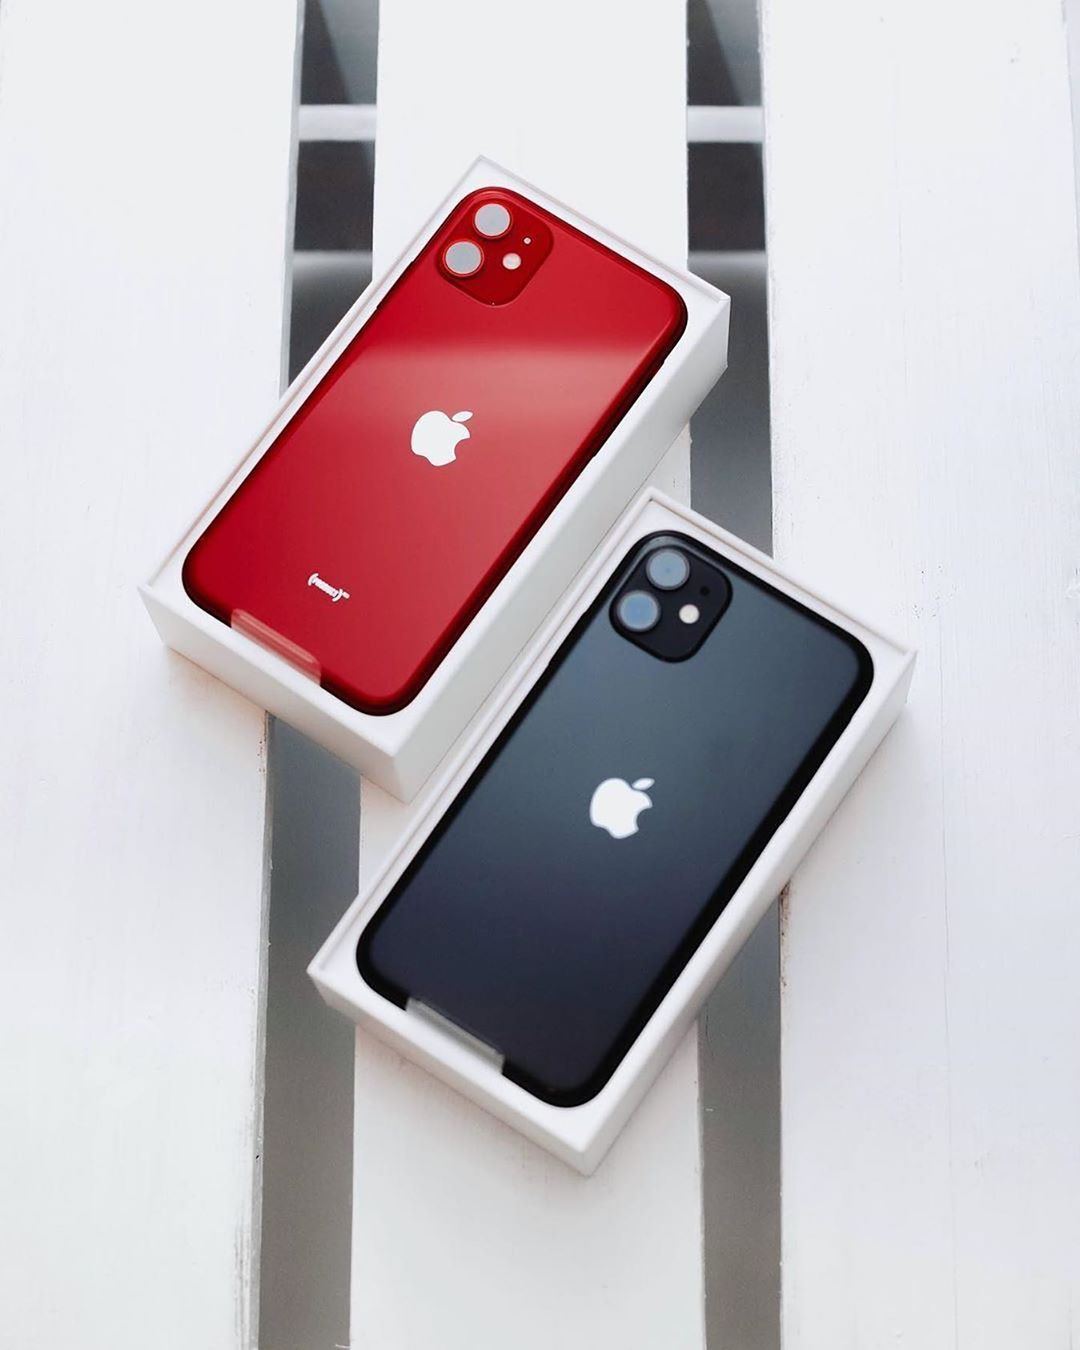 Appledsign On Instagram Product Red Or Black Iphone 11 Source Bengeskin Apple Iphone11 Apple Iphone Accessories Iphone Apple Products